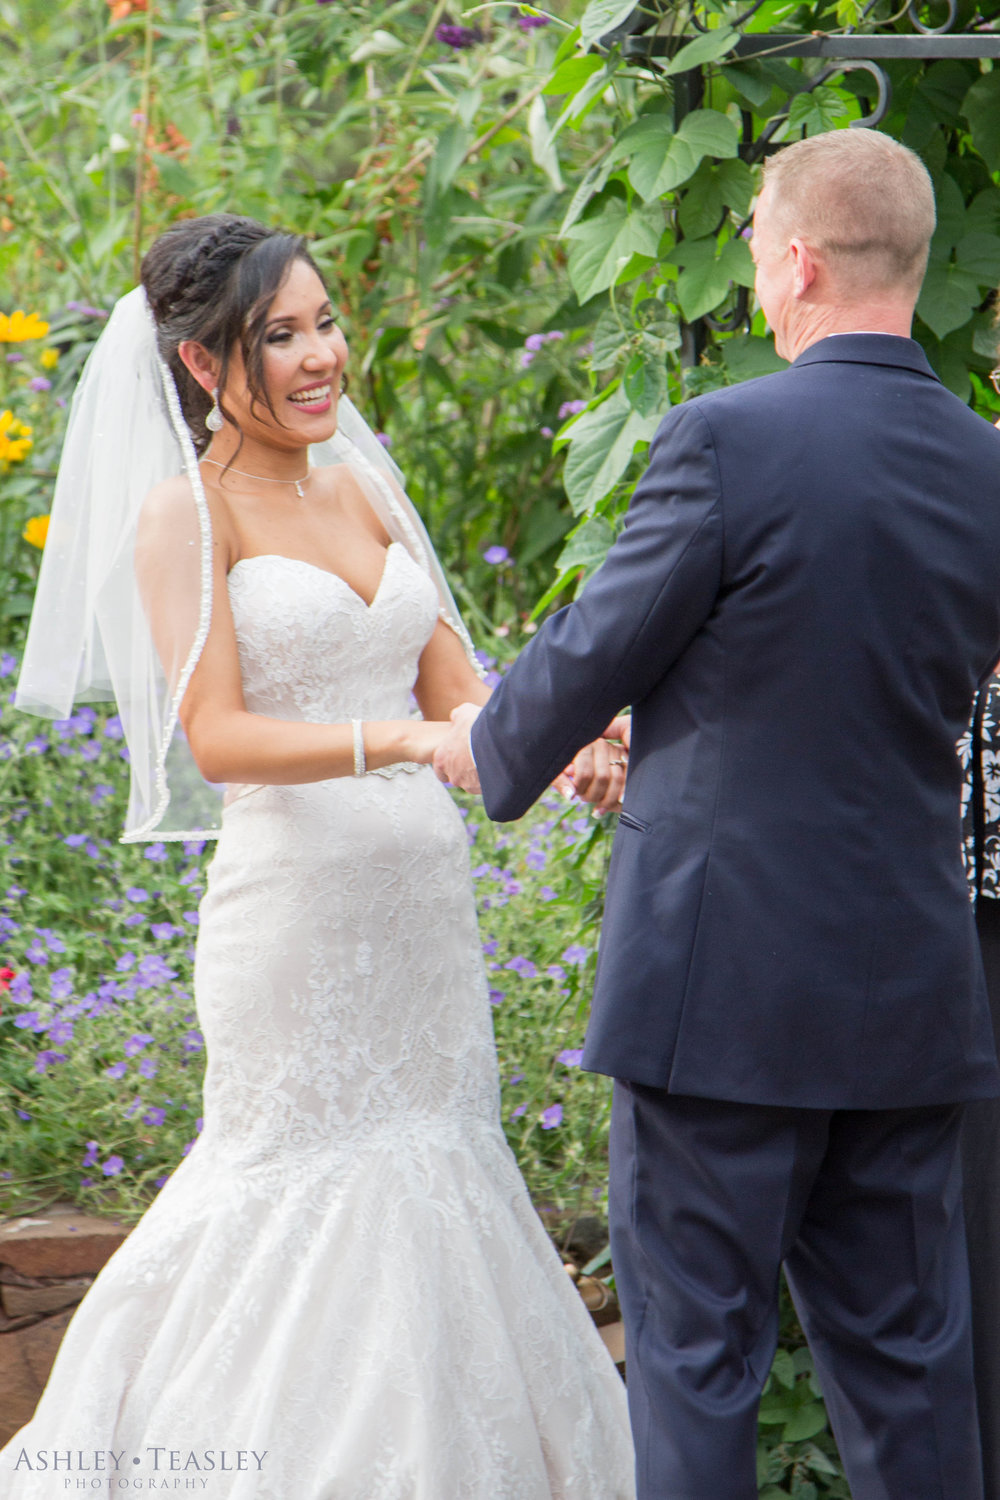 Ashley Teasley Photography- Sacramento Wedding Photographer- Bella Grace Winery 16.jpg